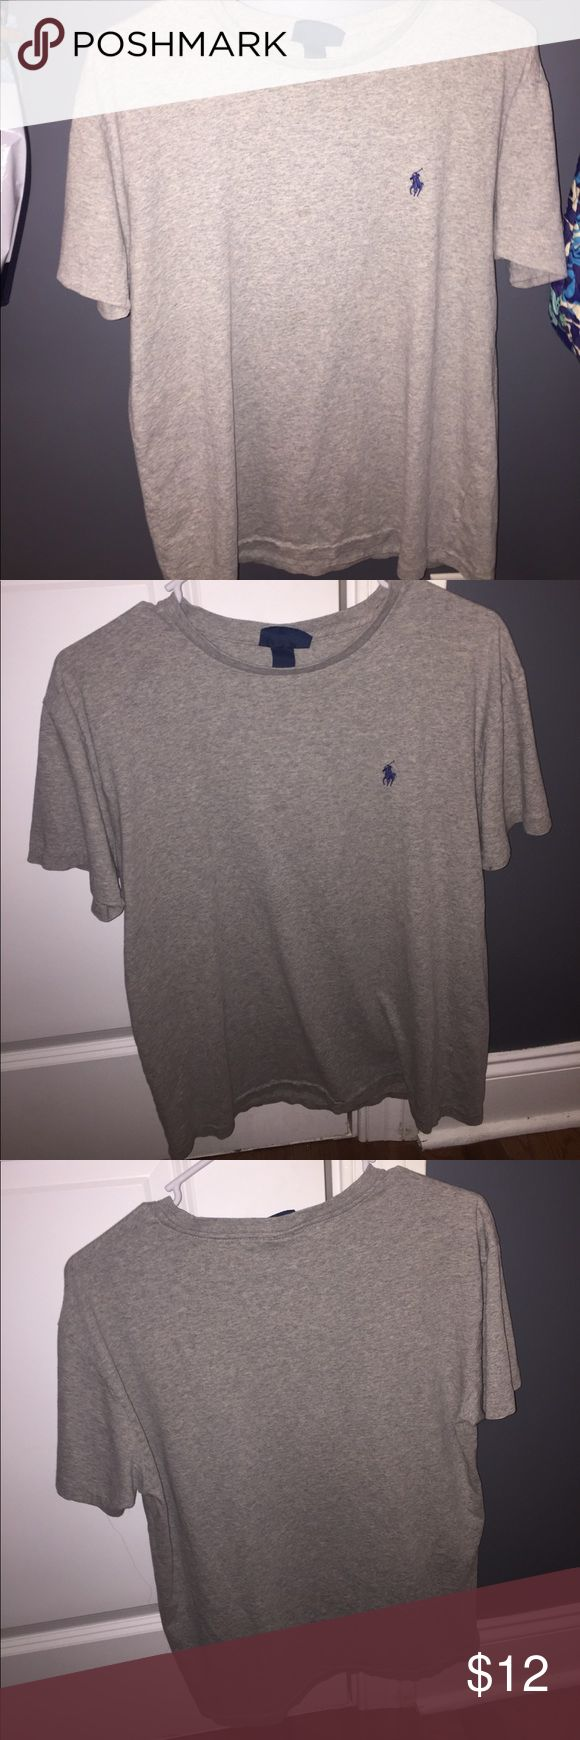 Polo Ralph Lauren shirt Grey polo shirt, size small. In good condition only worn a few times bc it was too small. Feel free to make an offer! Polo by Ralph Lauren Tops Tees - Short Sleeve